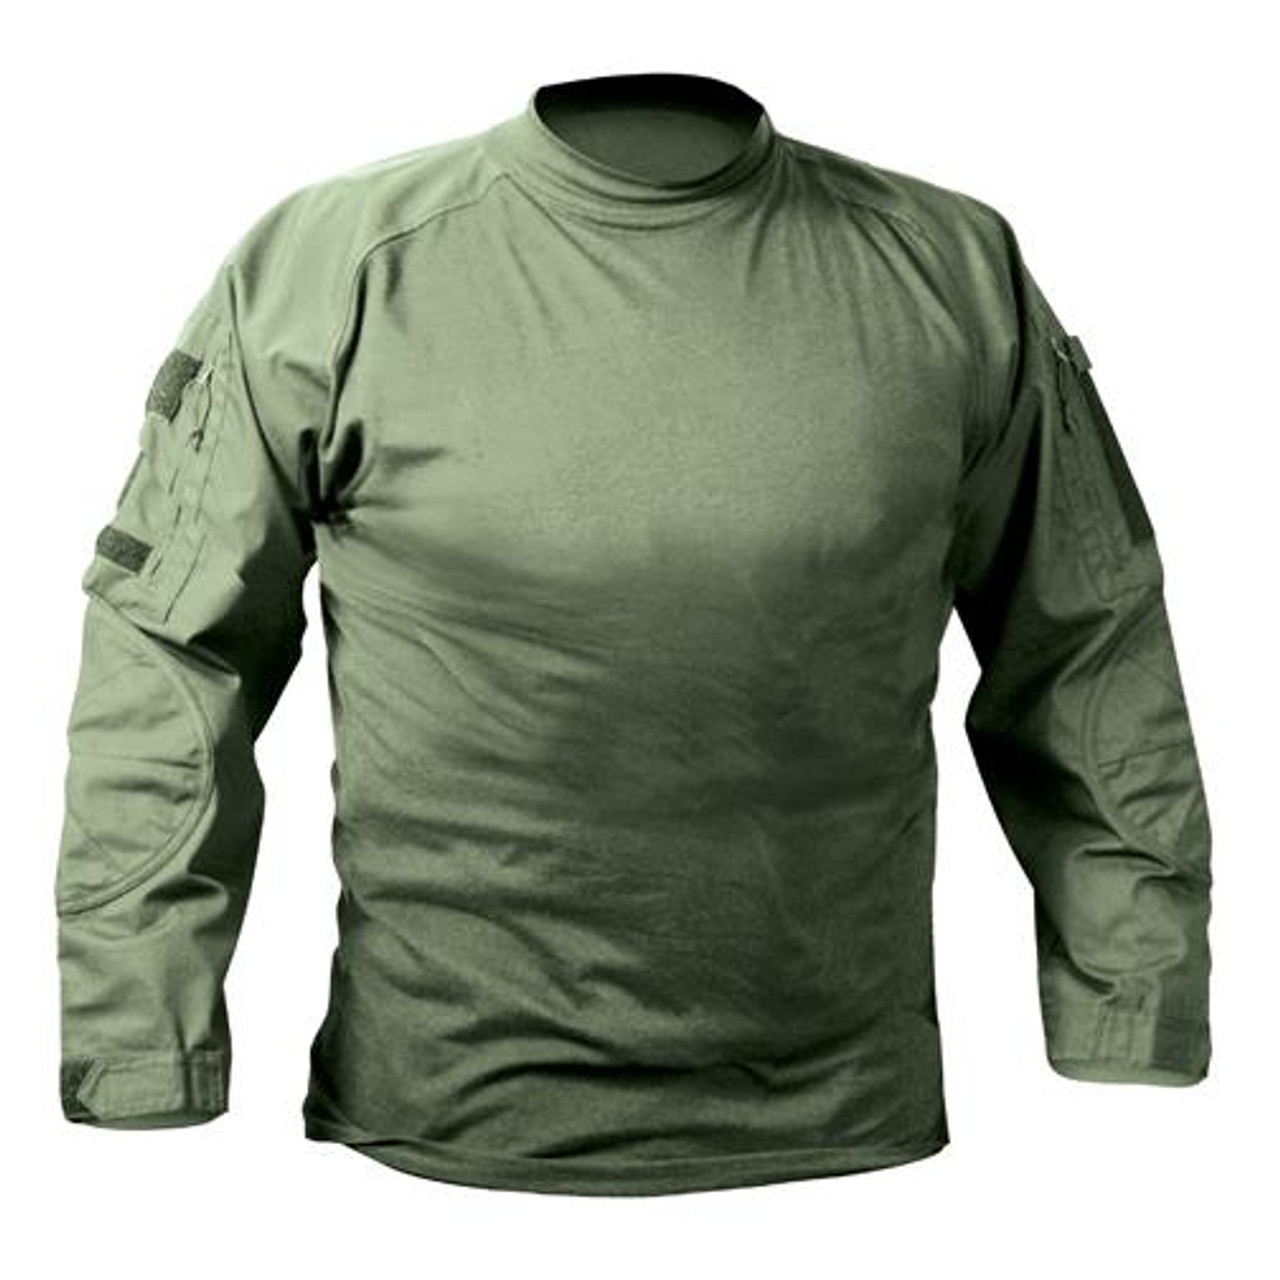 a914a47e Rothco Combat Shirt - Olive Drab - Hero Outdoors